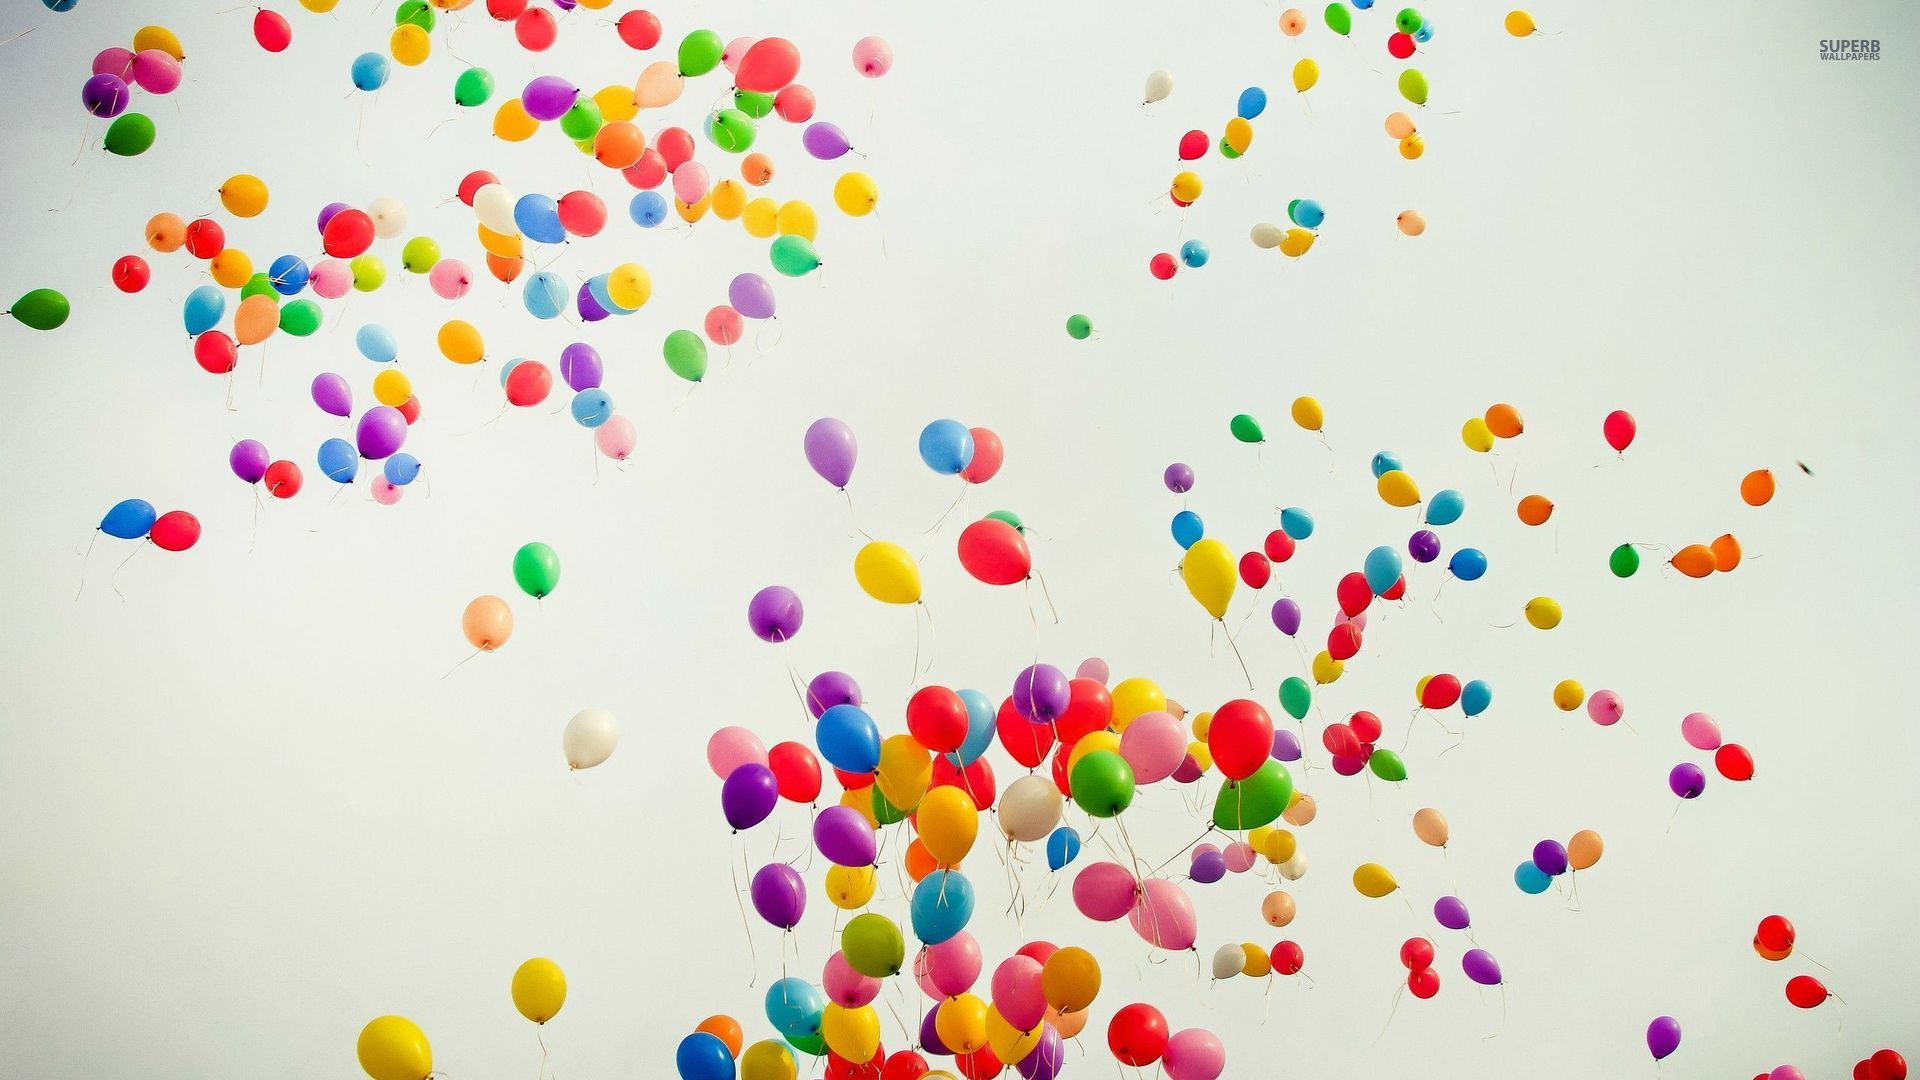 Colorful Balloon Wallpaper